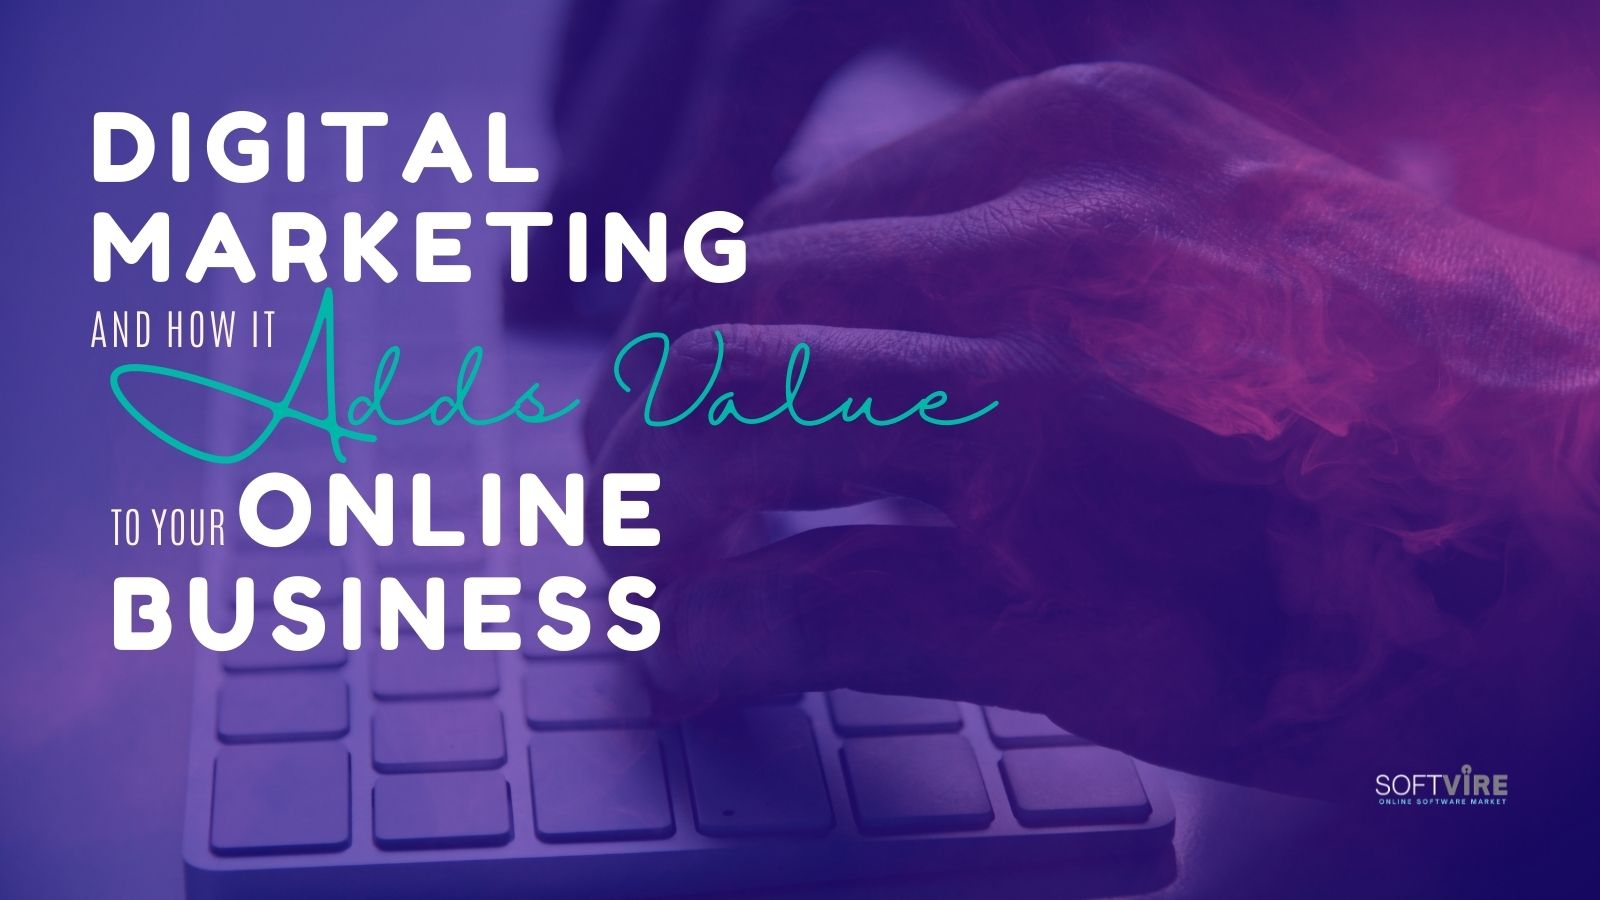 Digital Marketing and How It Adds Value to Your Online Business - Softvire Global Market